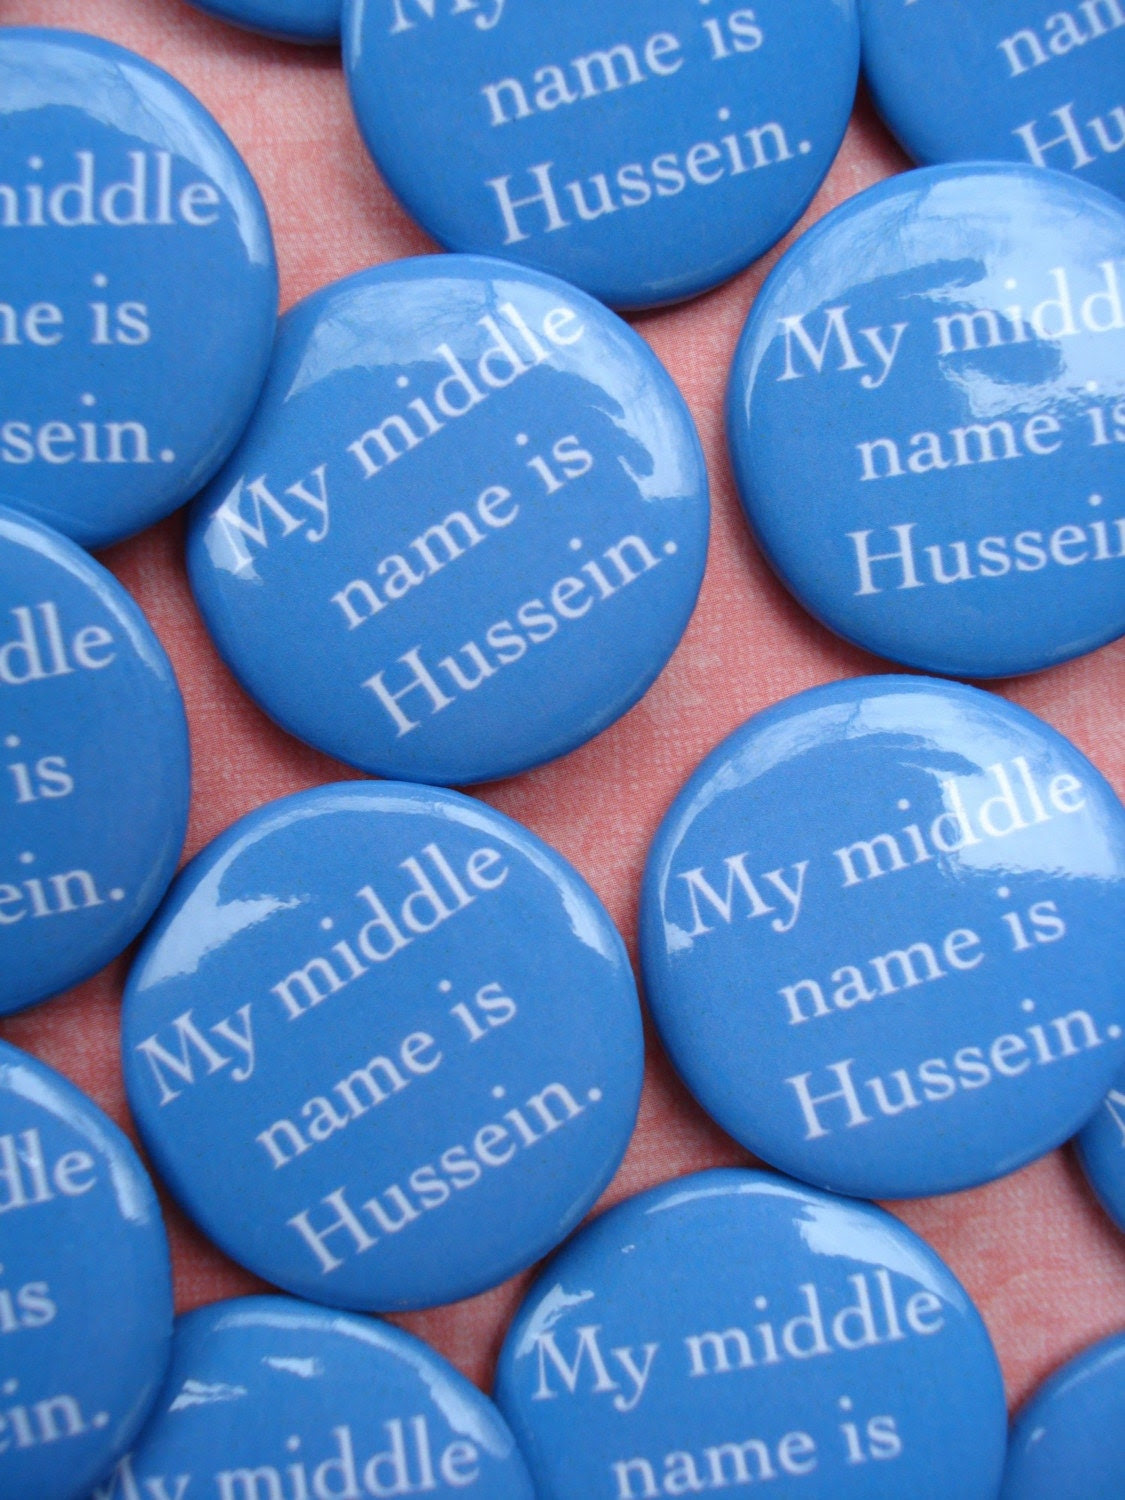 MY MIDDLE NAME IS HUSSEIN. 1.25in Barack Obama button